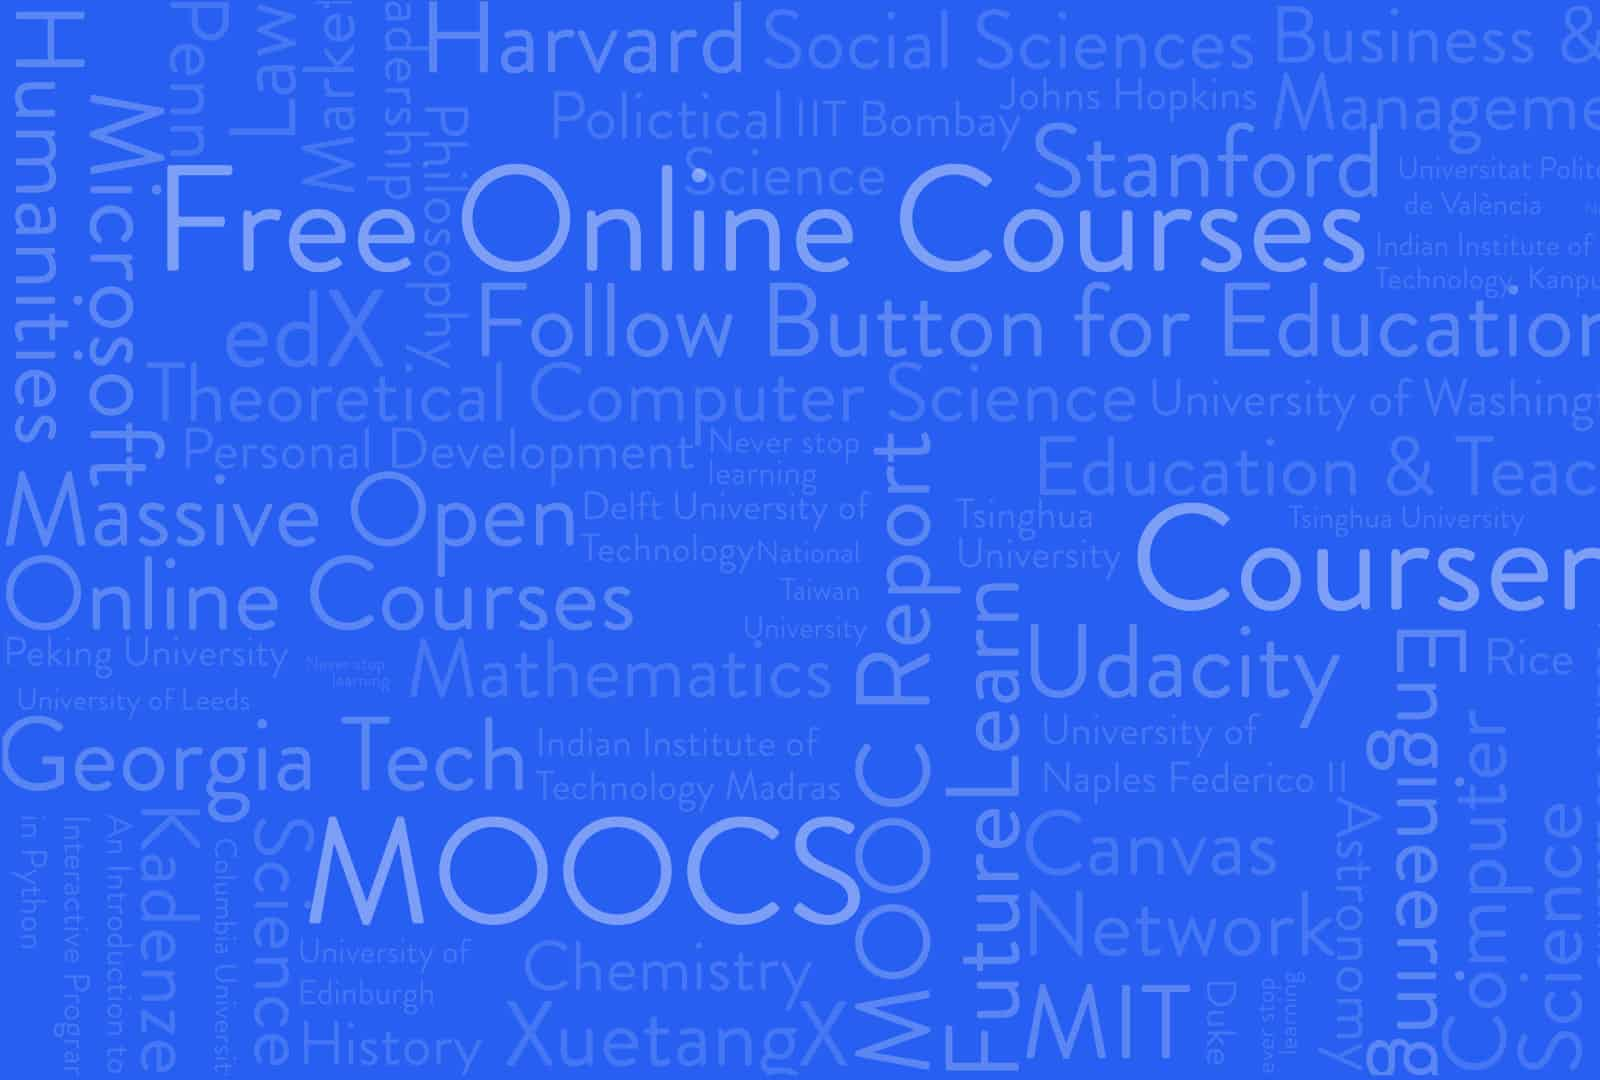 190 universities just launched 600 free online courses